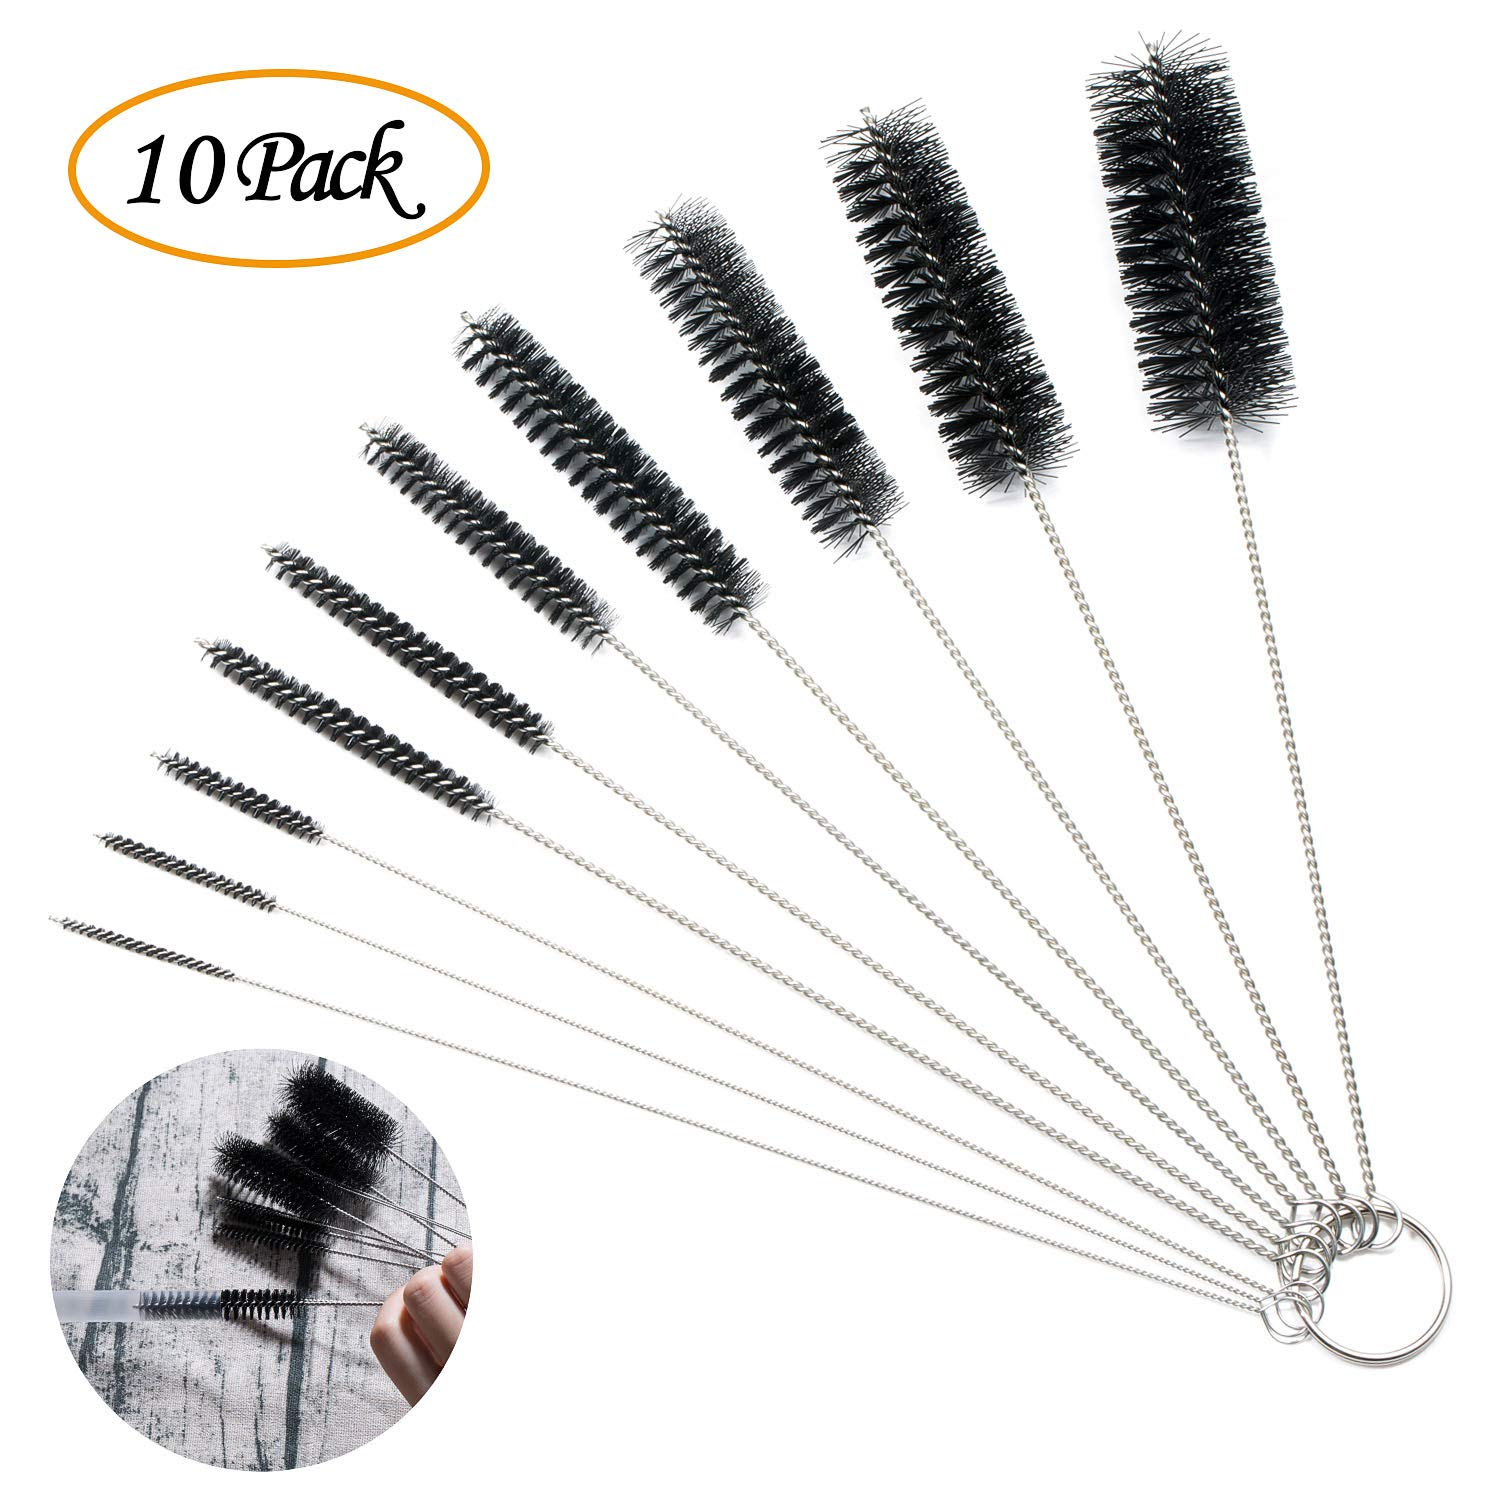 ZOEON Nylon Cleaning Brush 10Pcs Tube Brush Set Kettle Spout Brush for Bottle, Tube, Jar and Keyboards